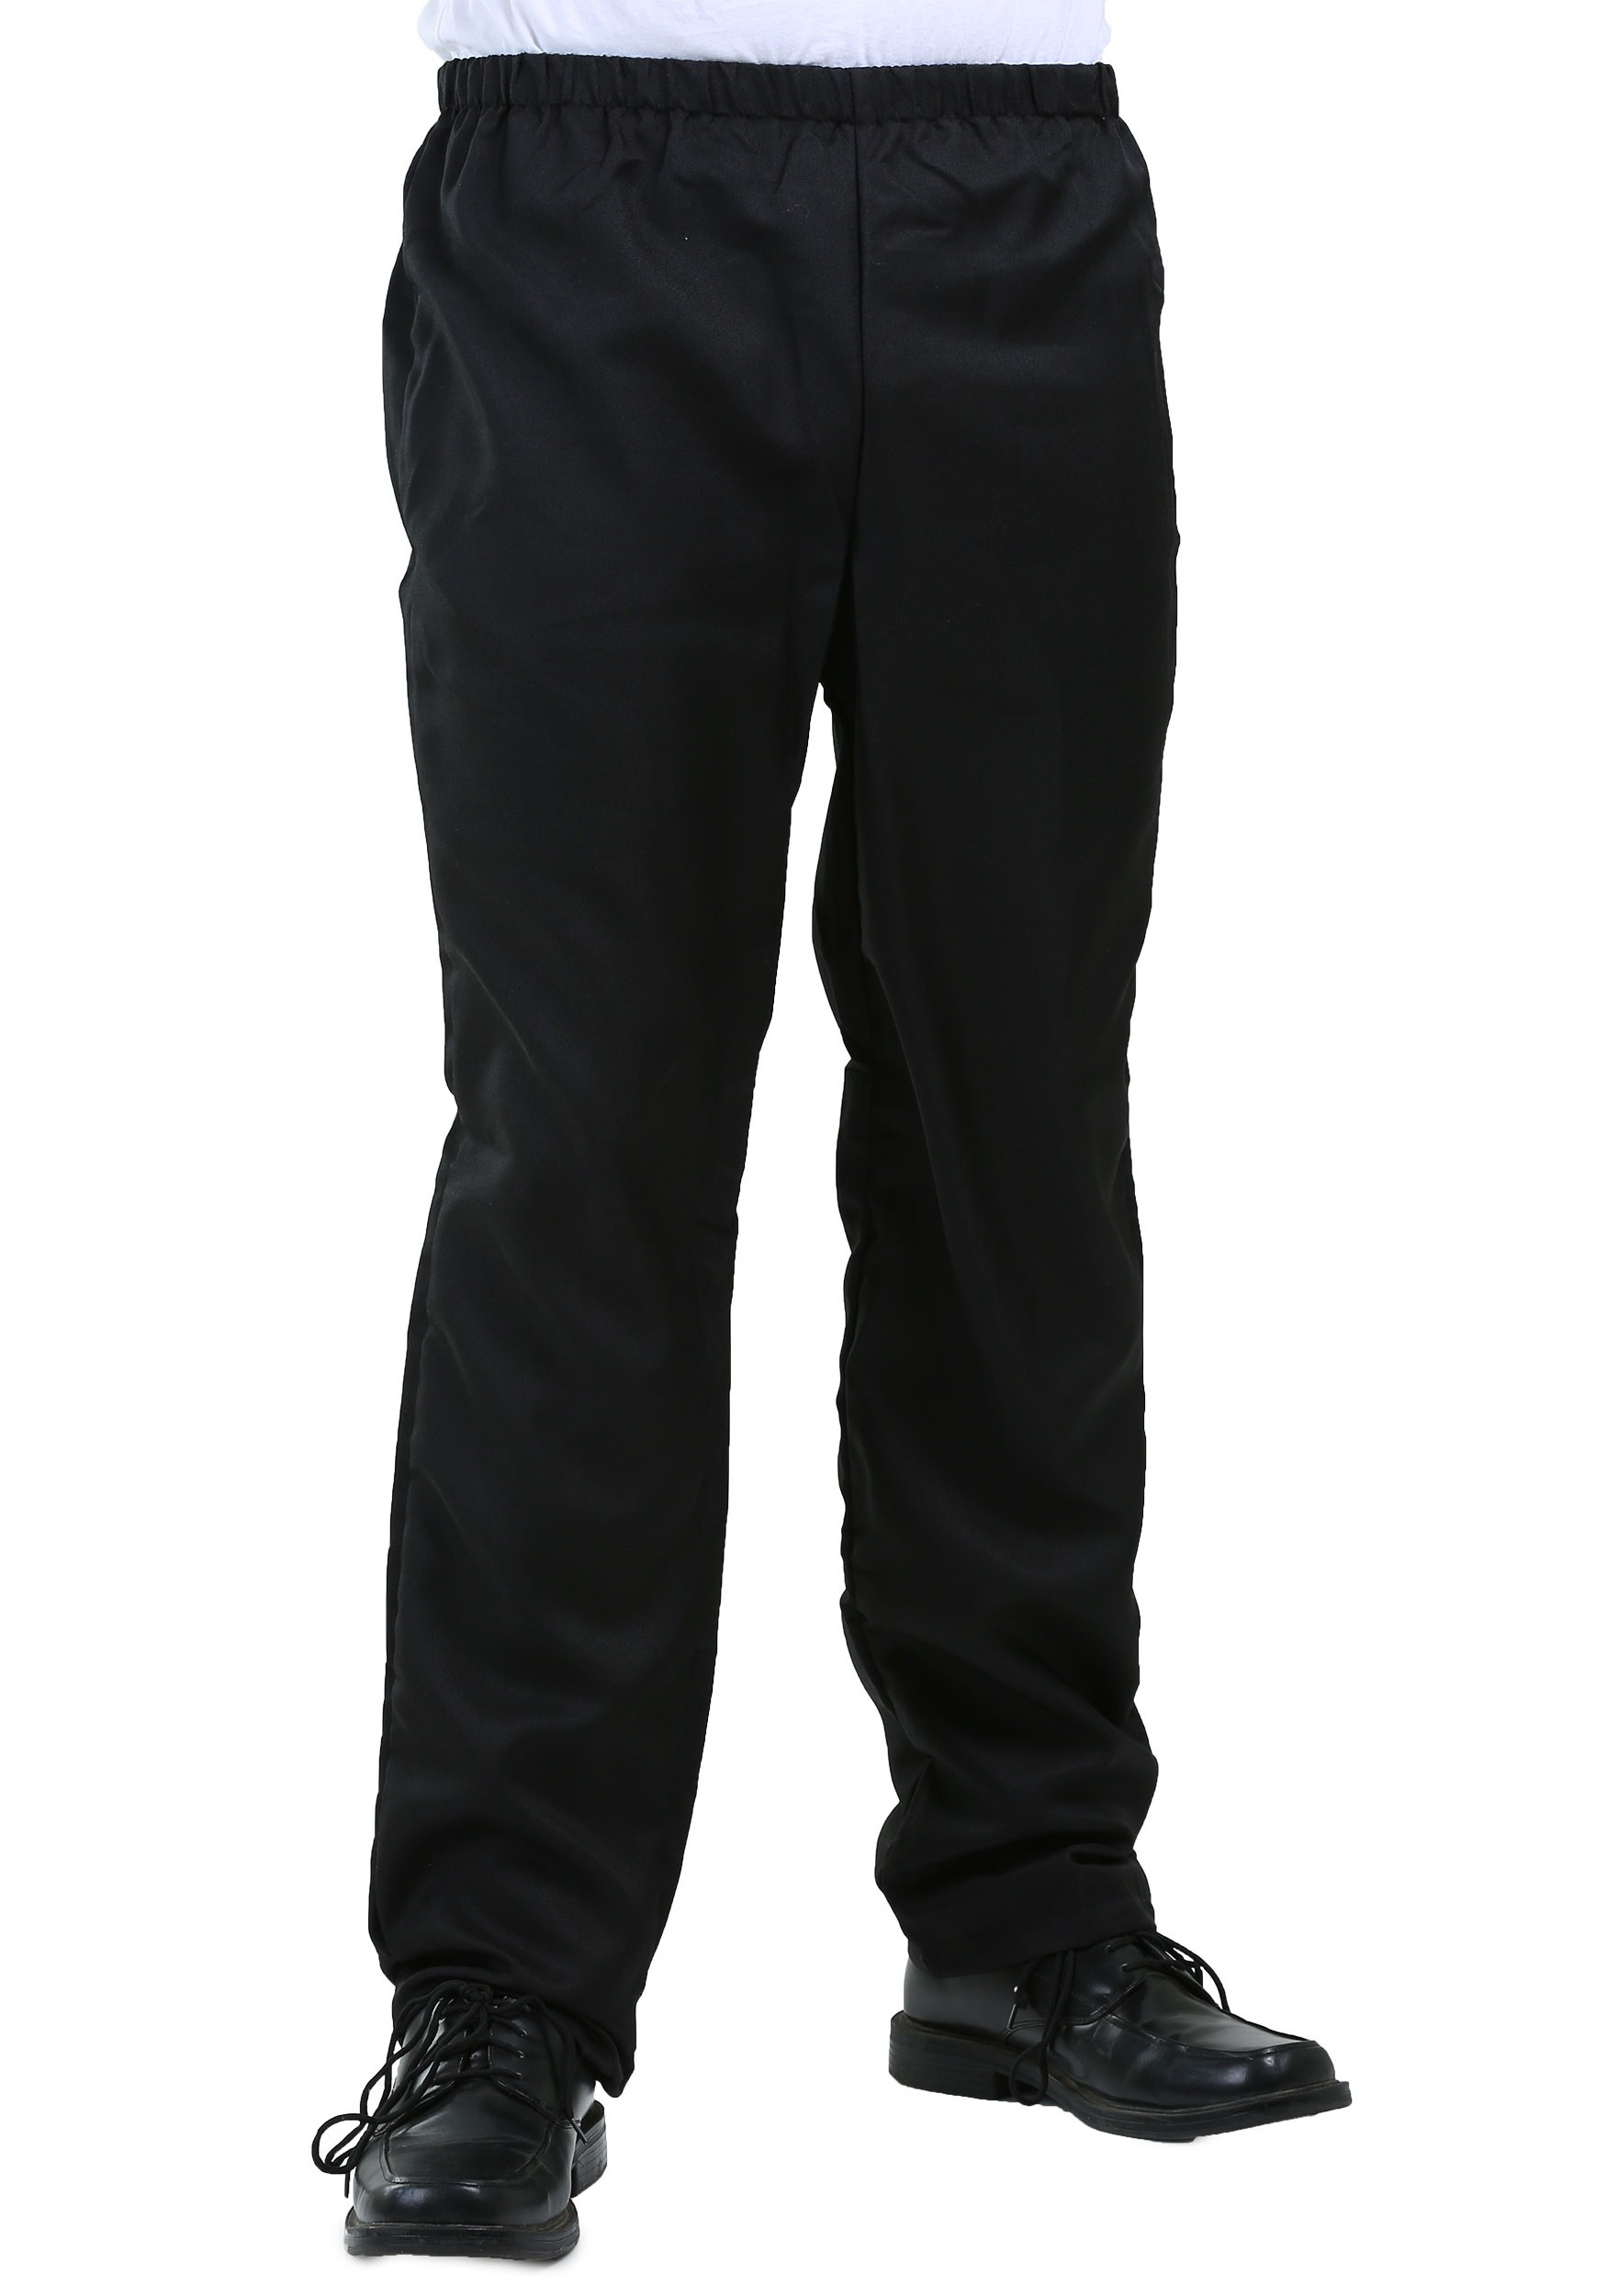 Free shipping and returns on Men's Black Pants at ragabjv.gq